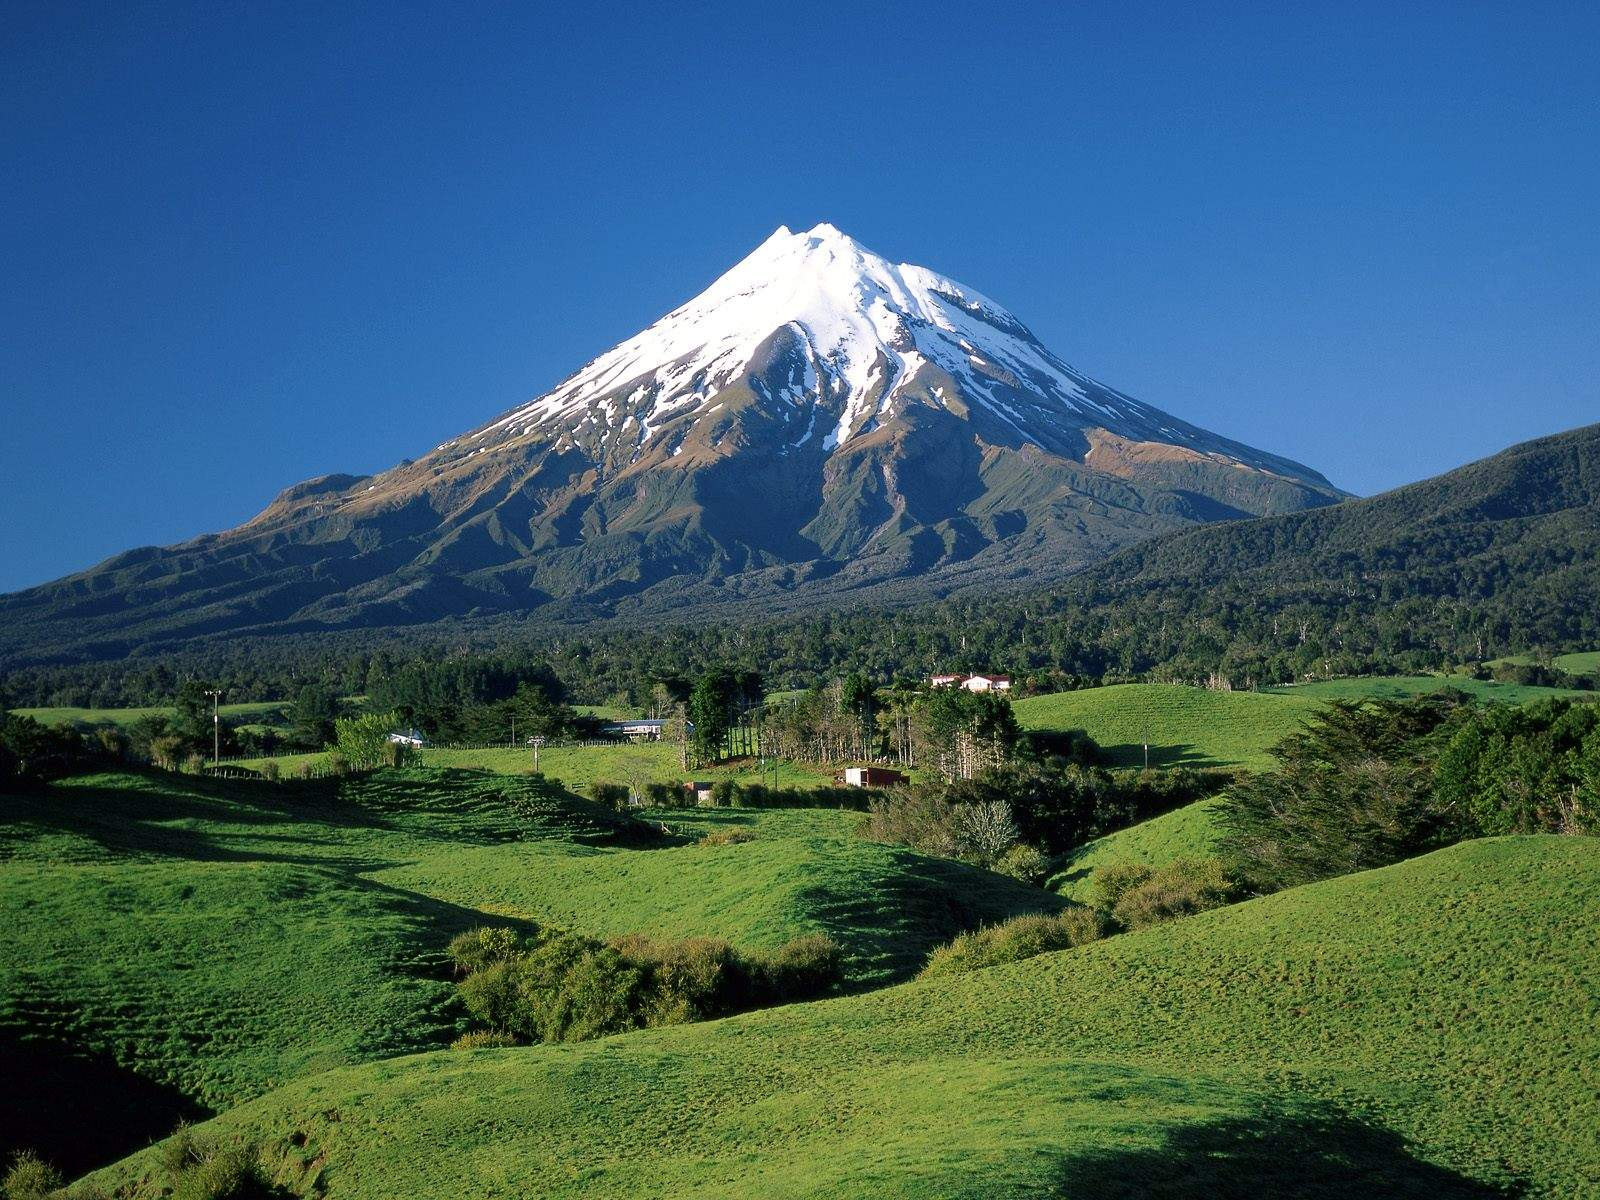 Taranaki mountain - New Zeland